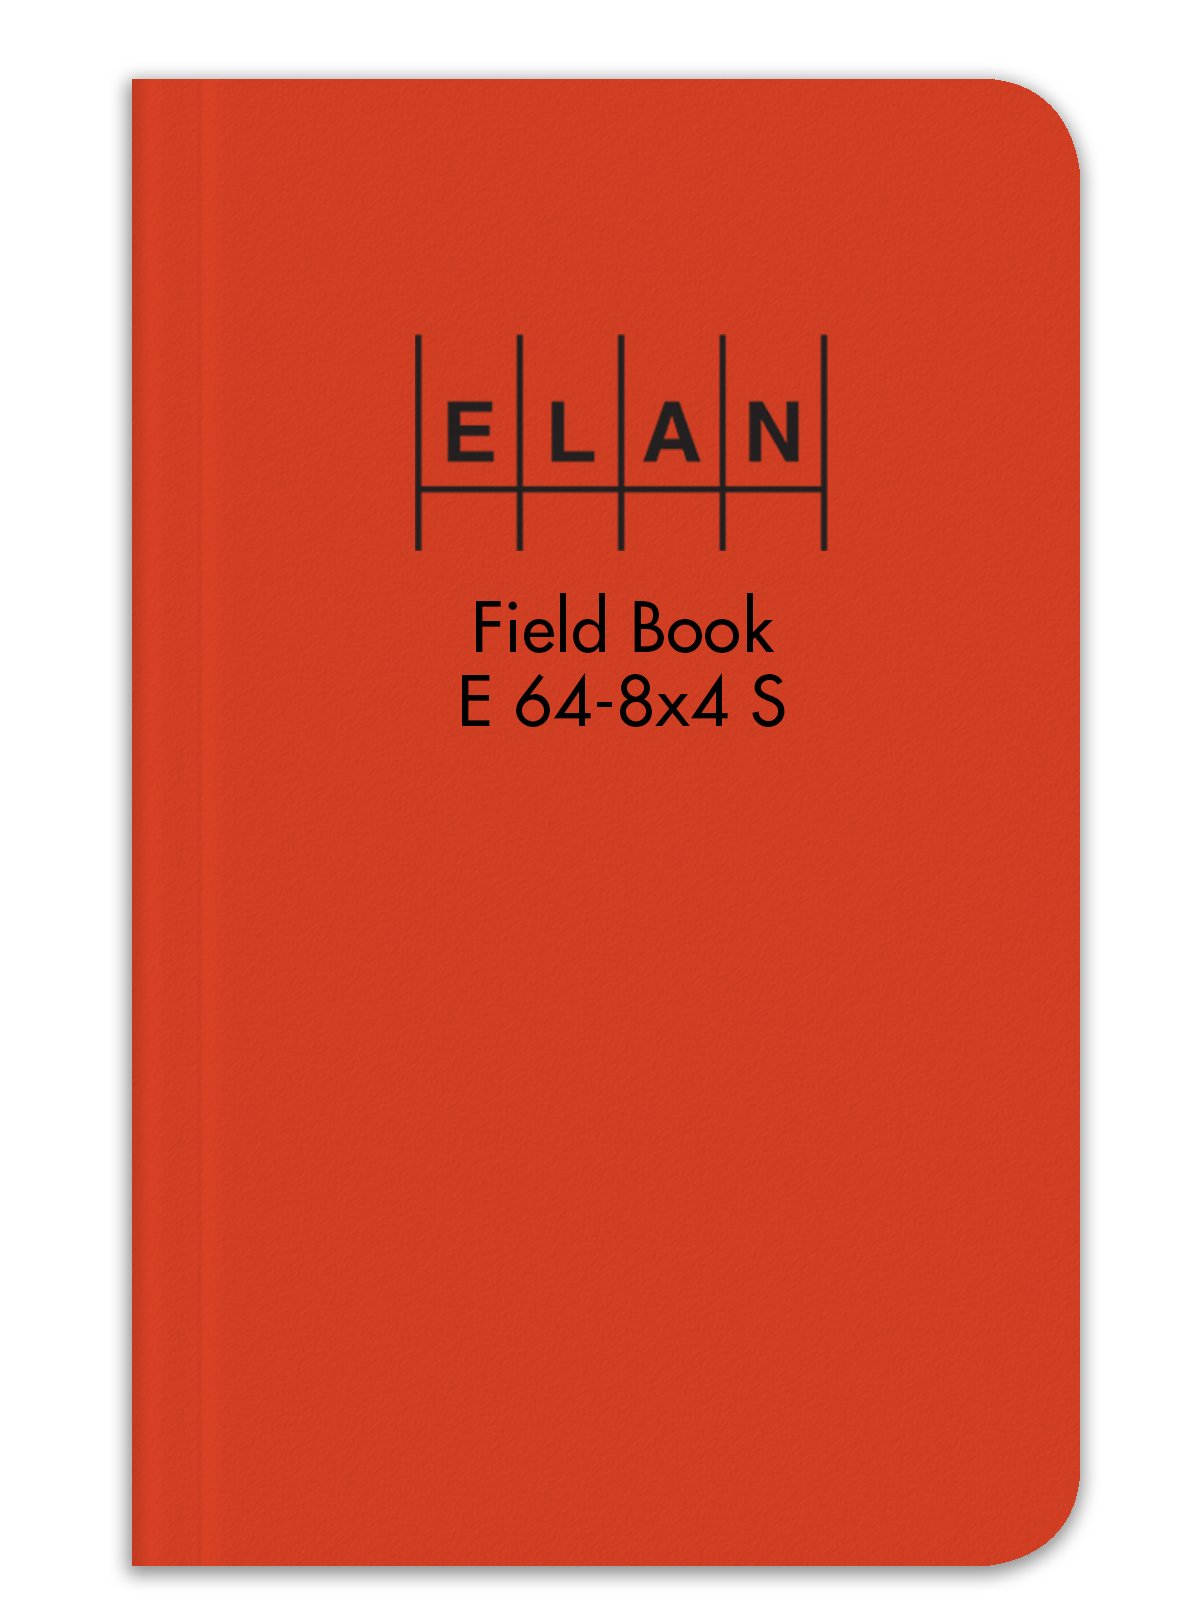 Elan Publishing Company E64-8x4S Sewn Field Surveying Book 4 5/8 x 7 1/4   Orange Stiff Cover (Pack of 48)